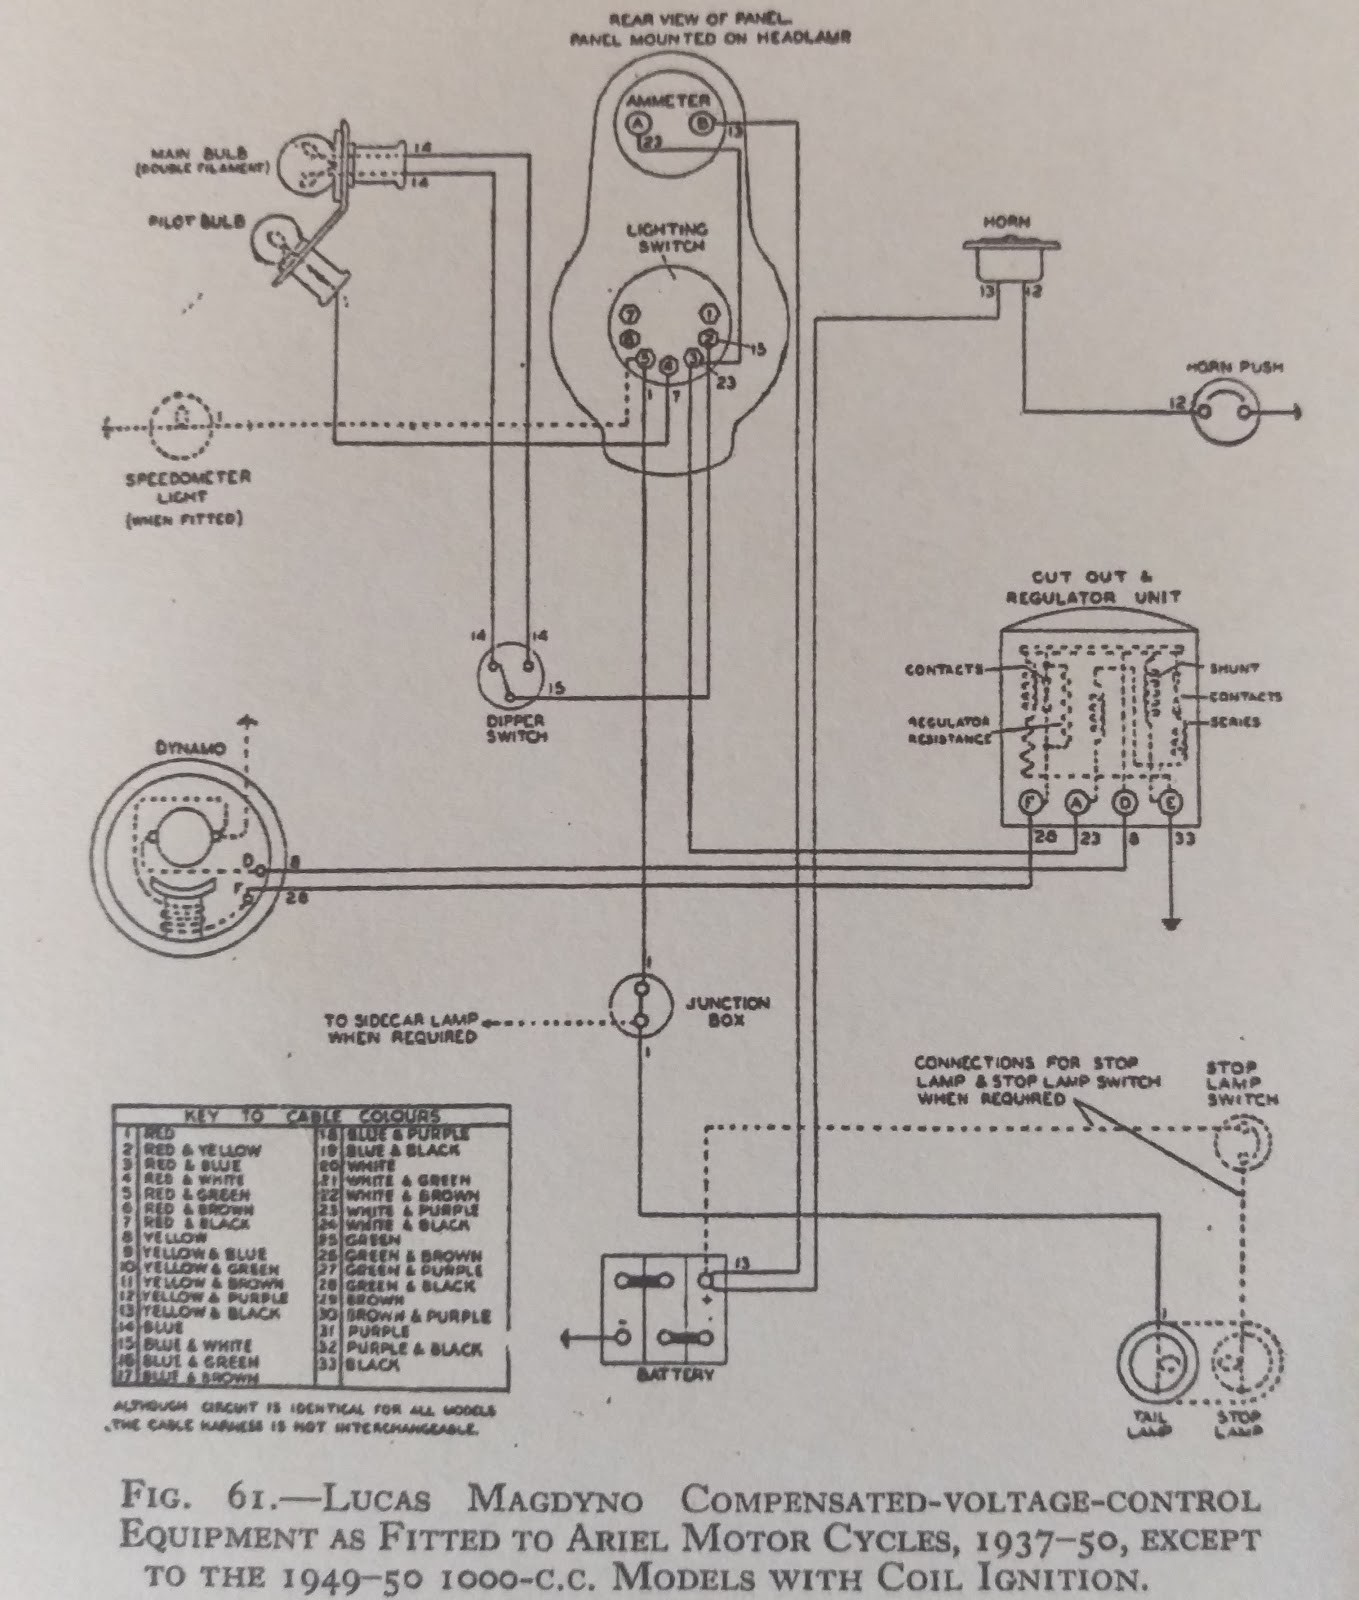 hight resolution of negative bsa ground wiring diagram wiring diagrams long 1965 bsa 6 volt positive ground wiring diagram